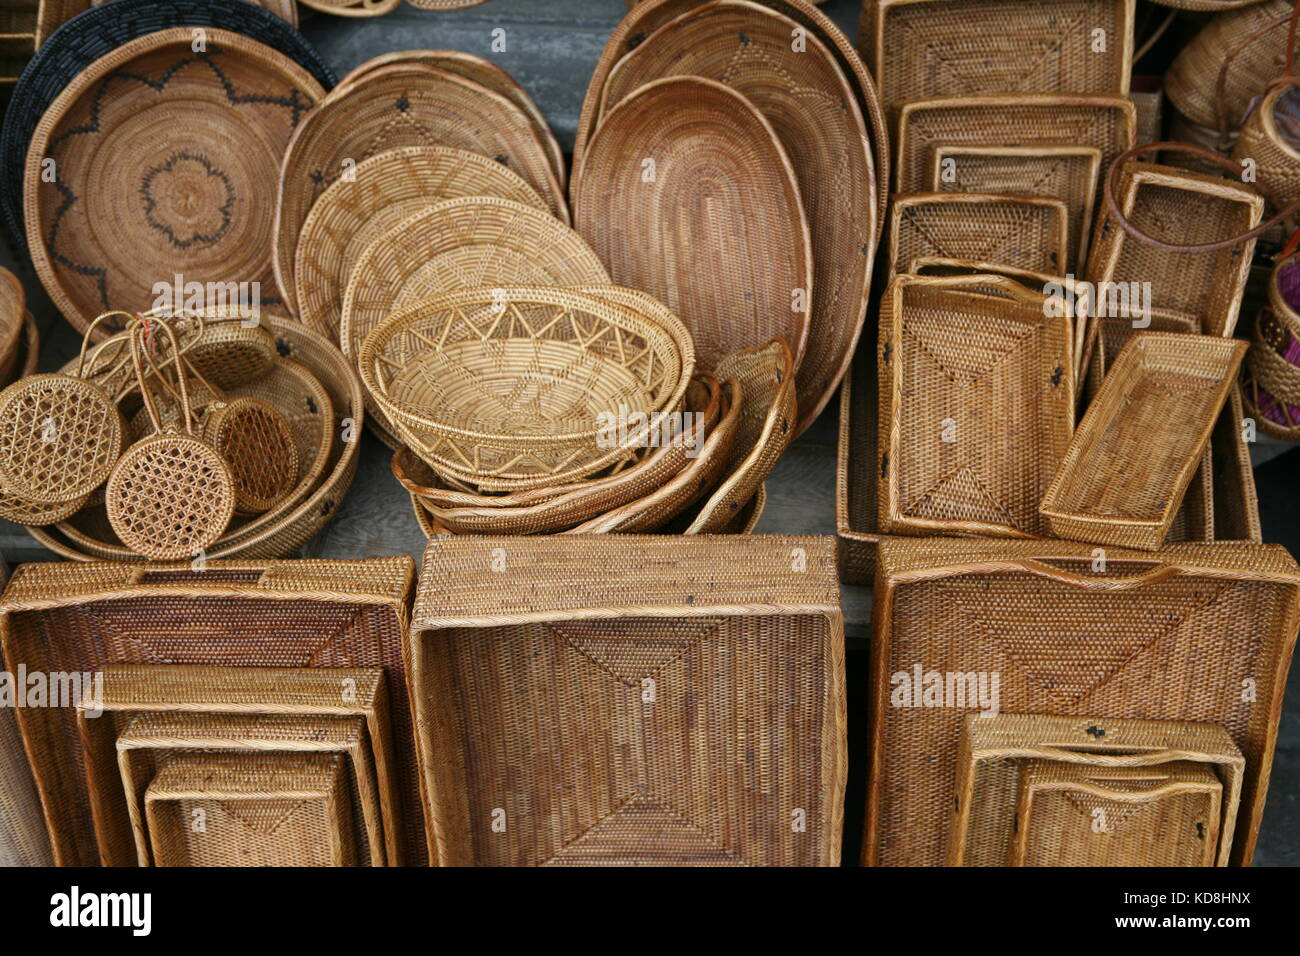 Körbe und Korbwaren zum Verkauf auf Bali - Baskets and gifts for sale on Bali - Stock Image